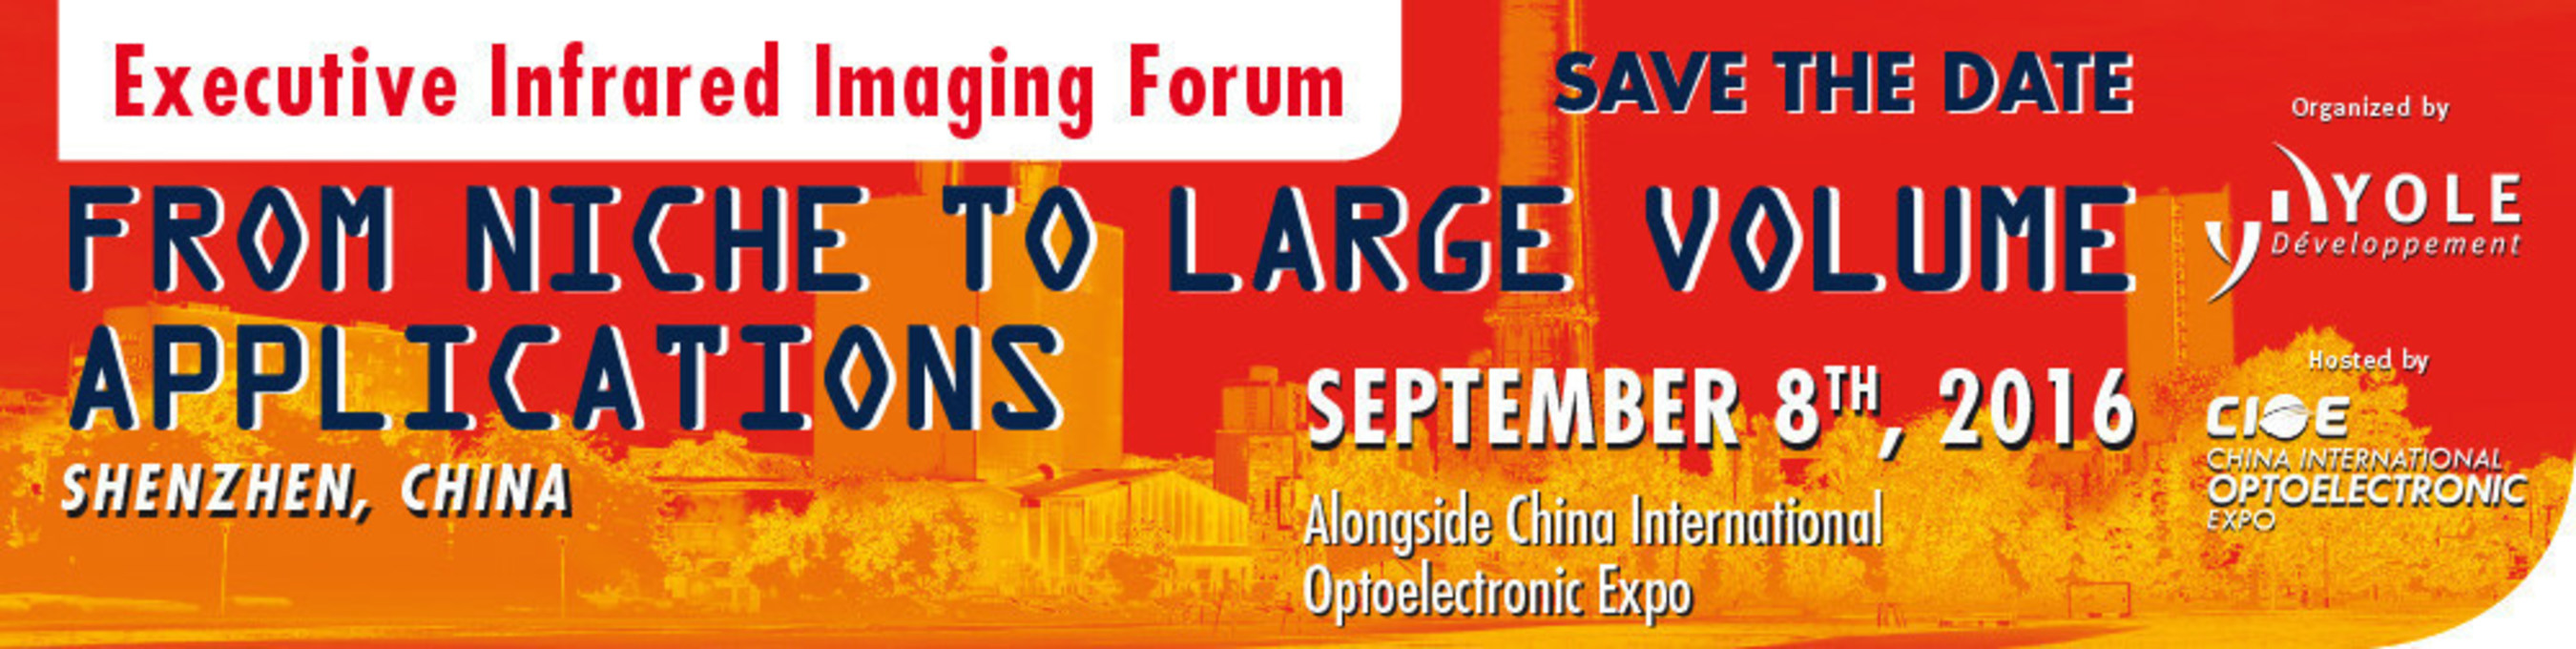 1st Executive Infrared Imaging Forum